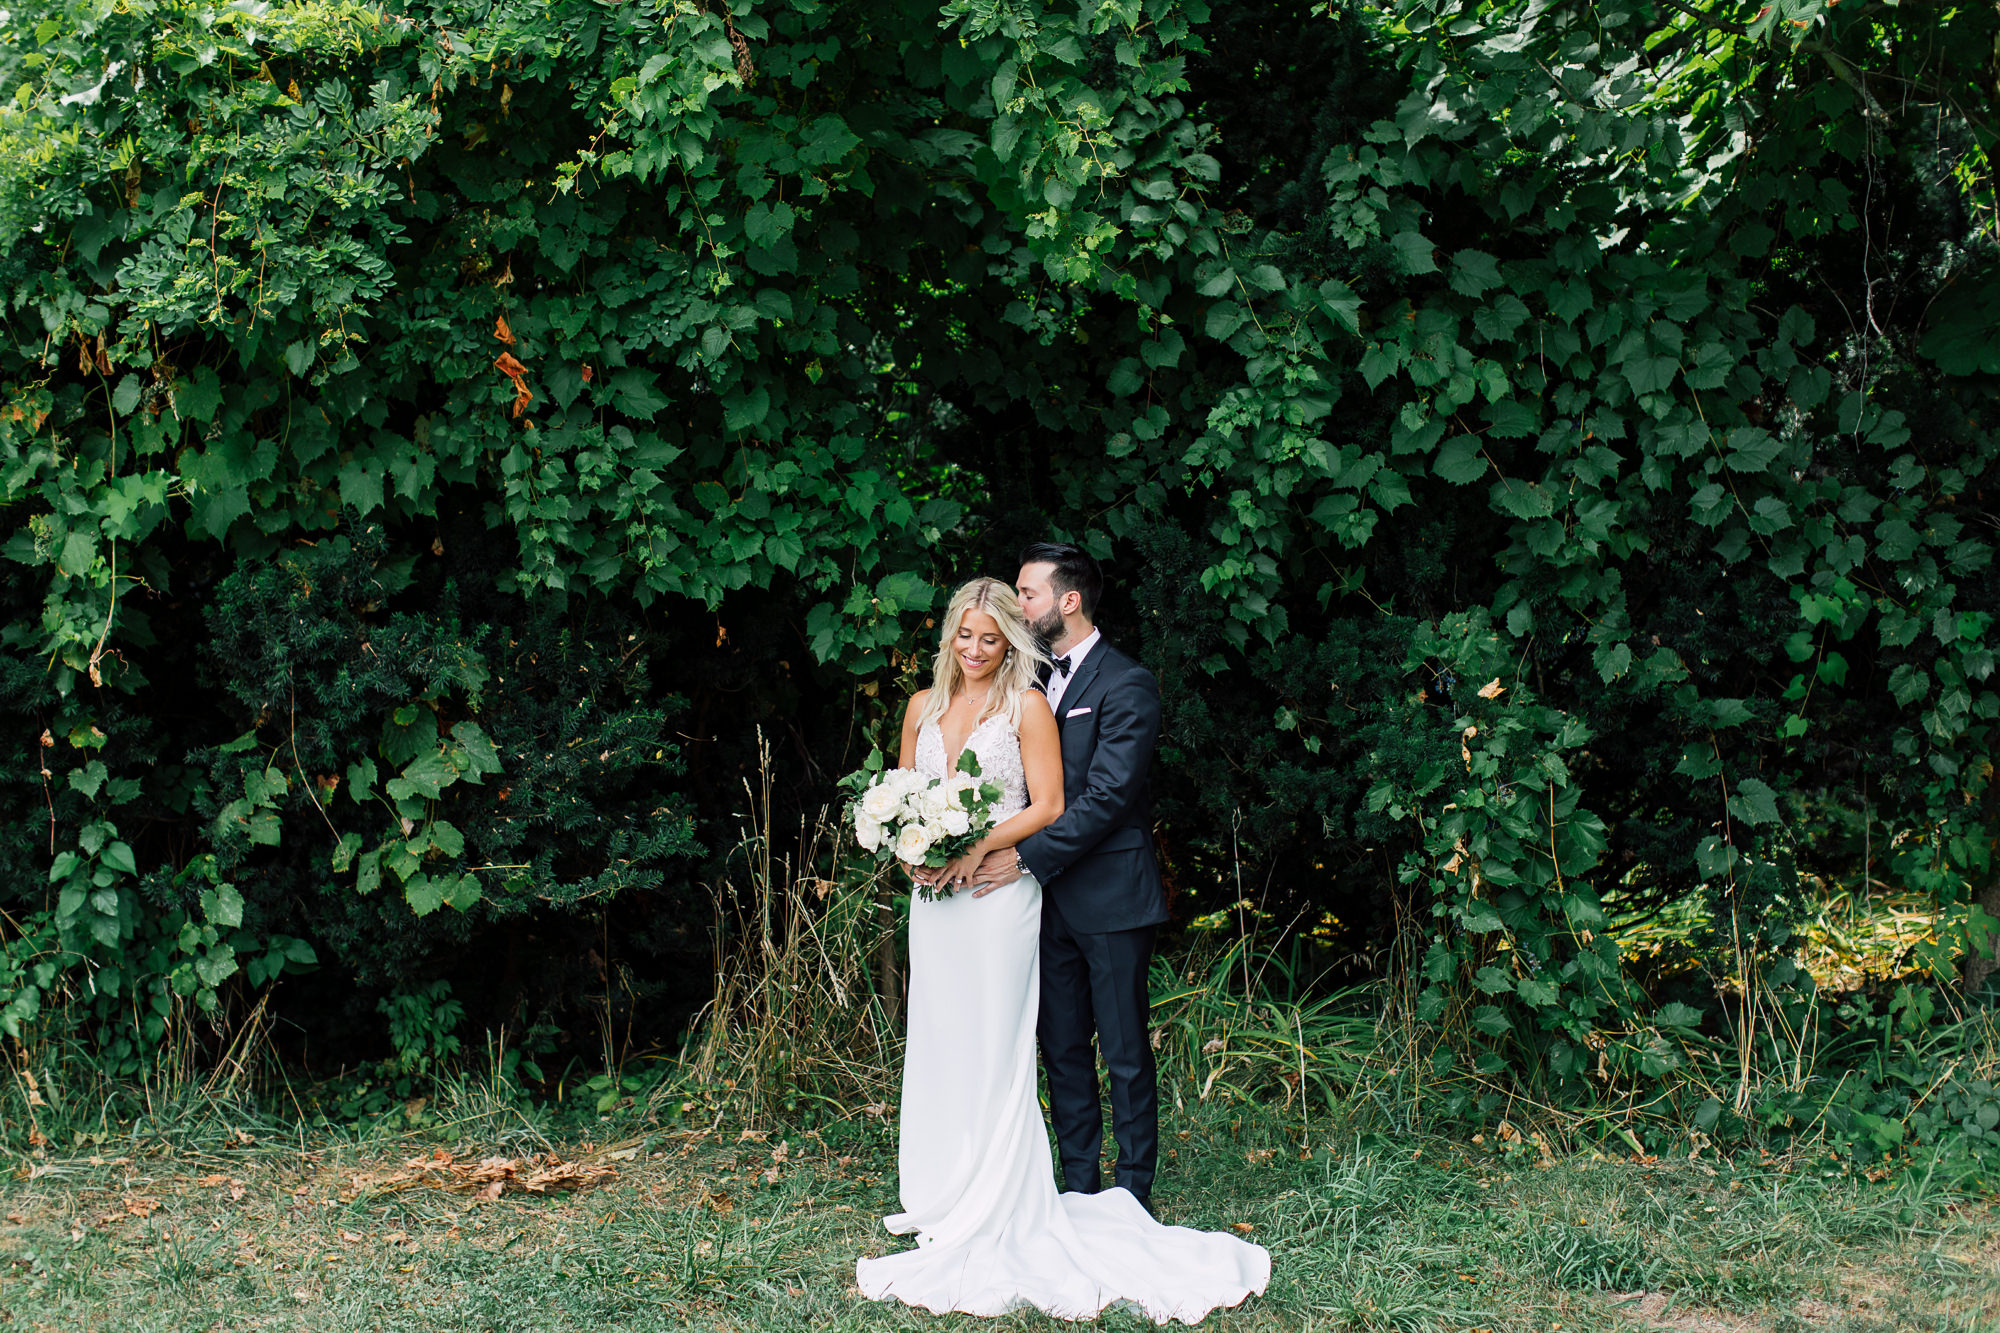 greenery wedding portrait